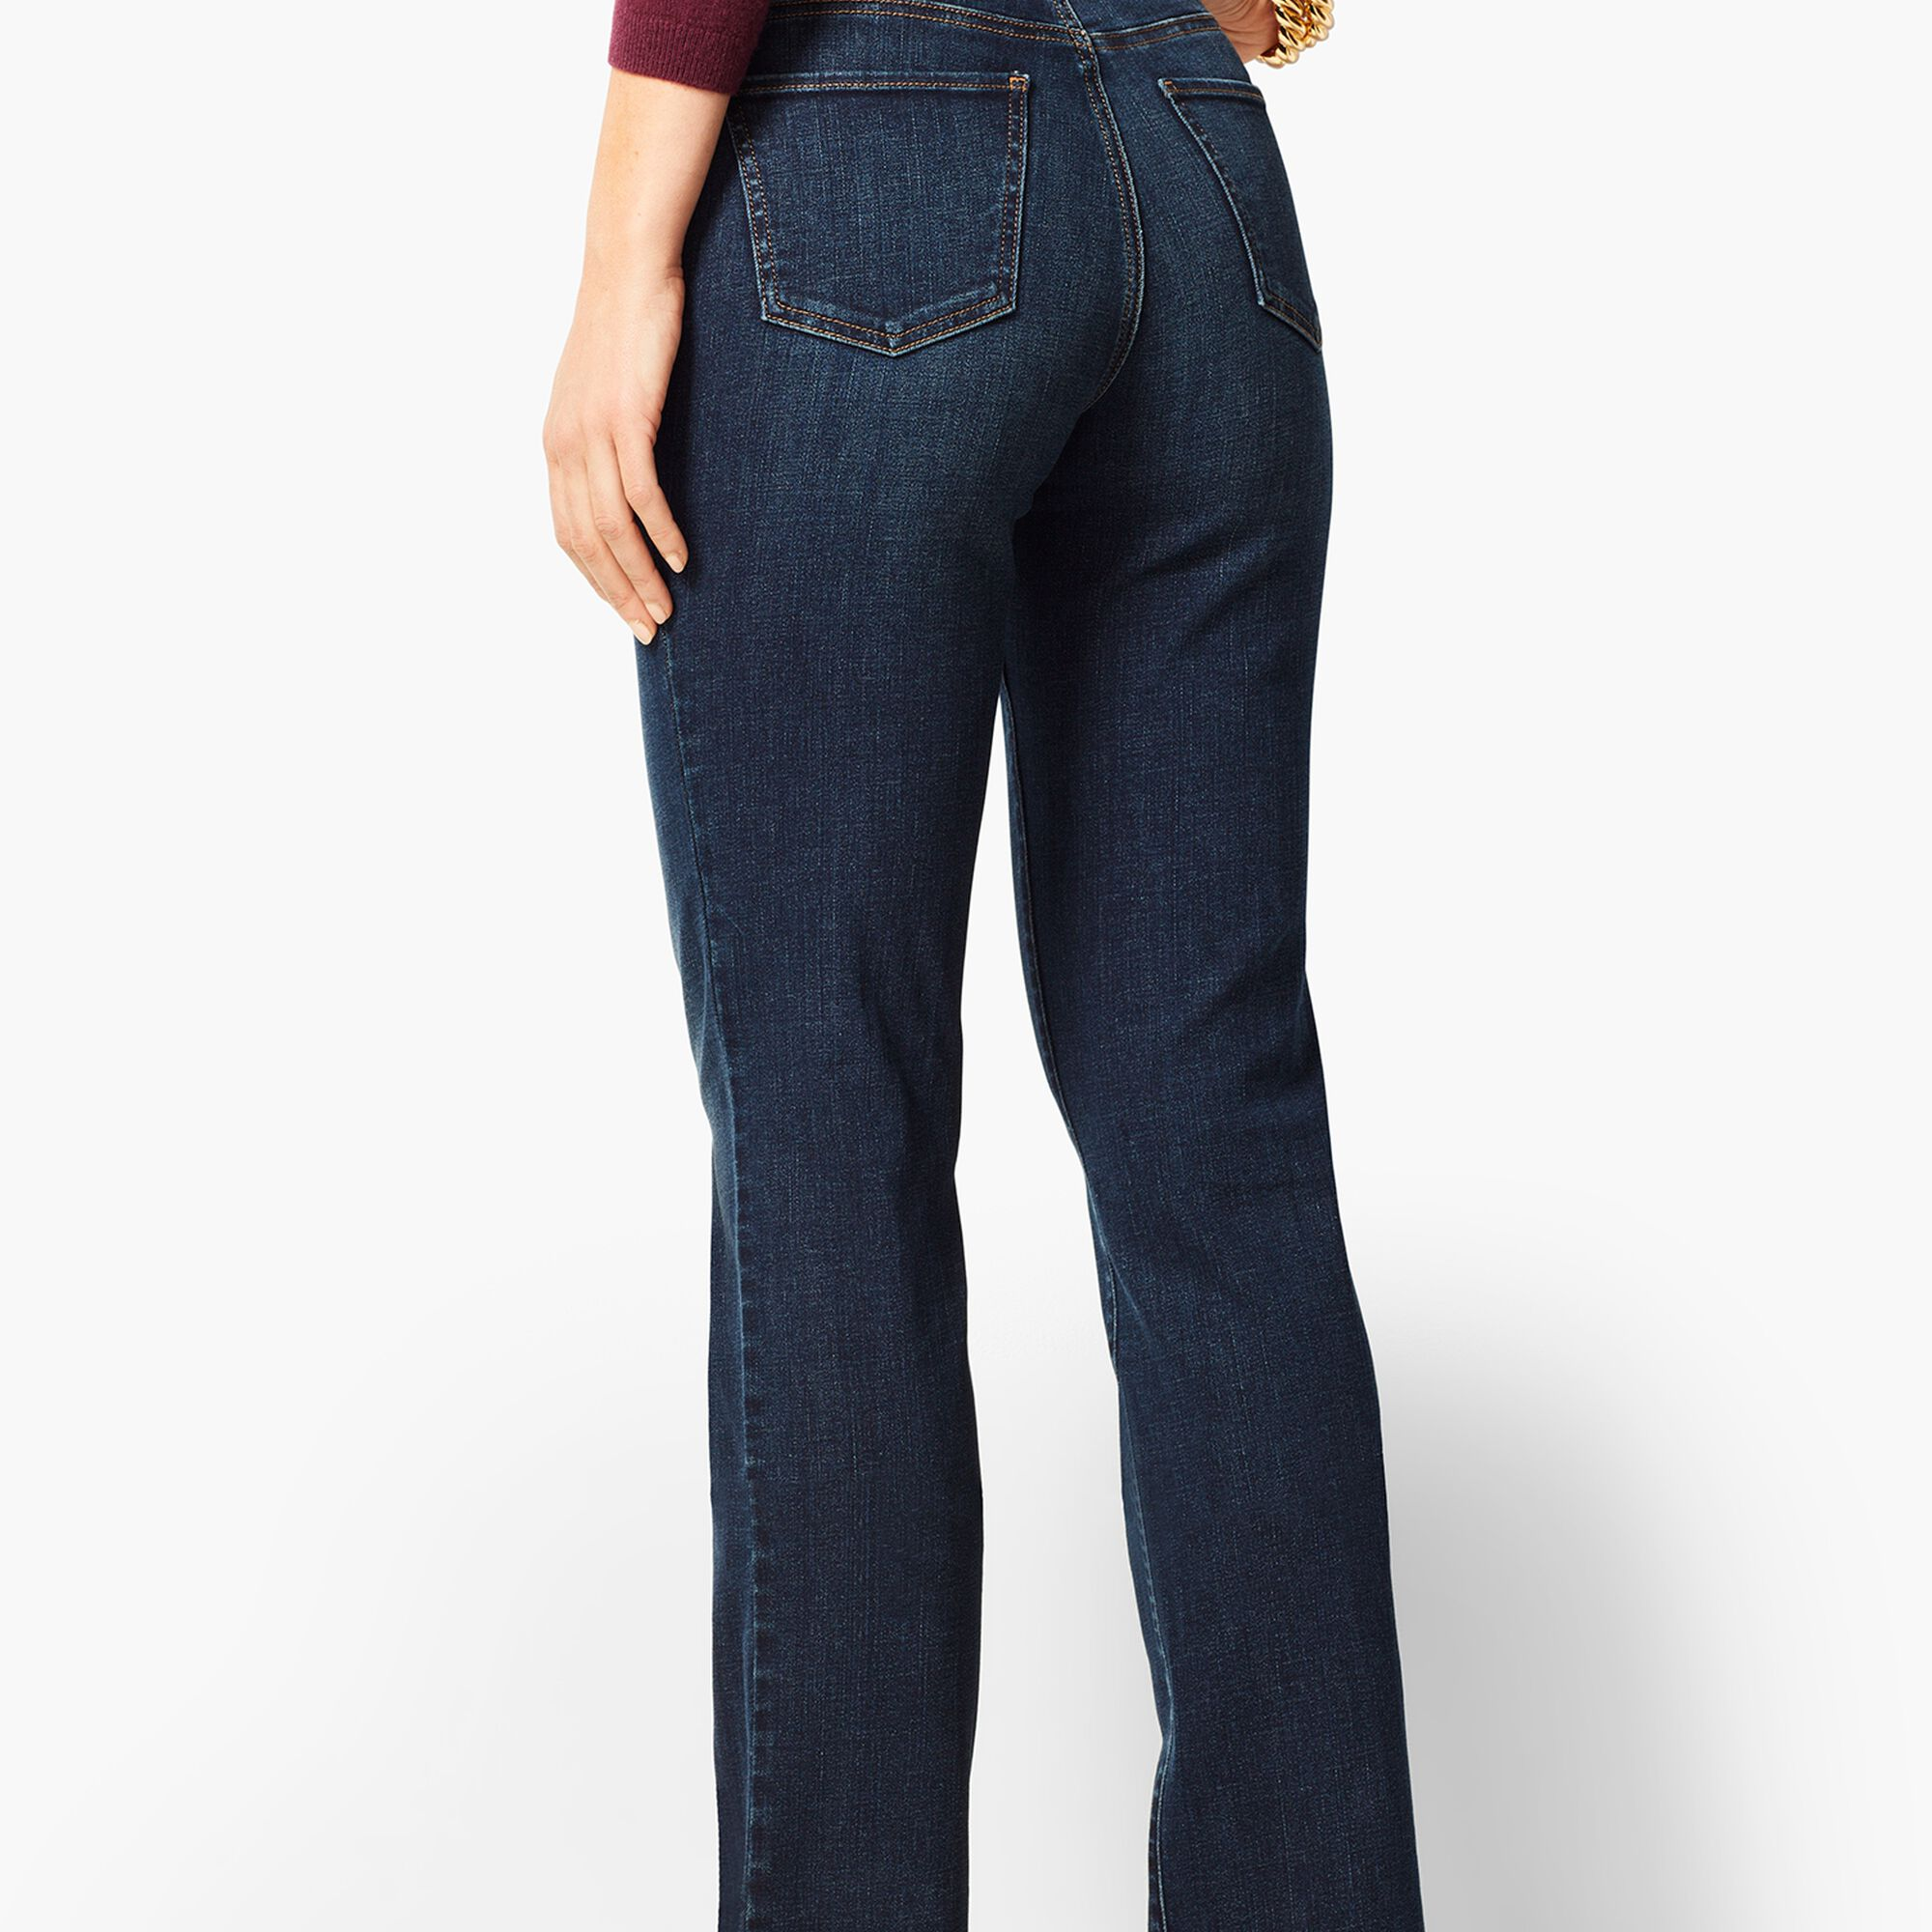 8f866a60909 High-Waist Denim Barely Boot Jeans - Pioneer Wash